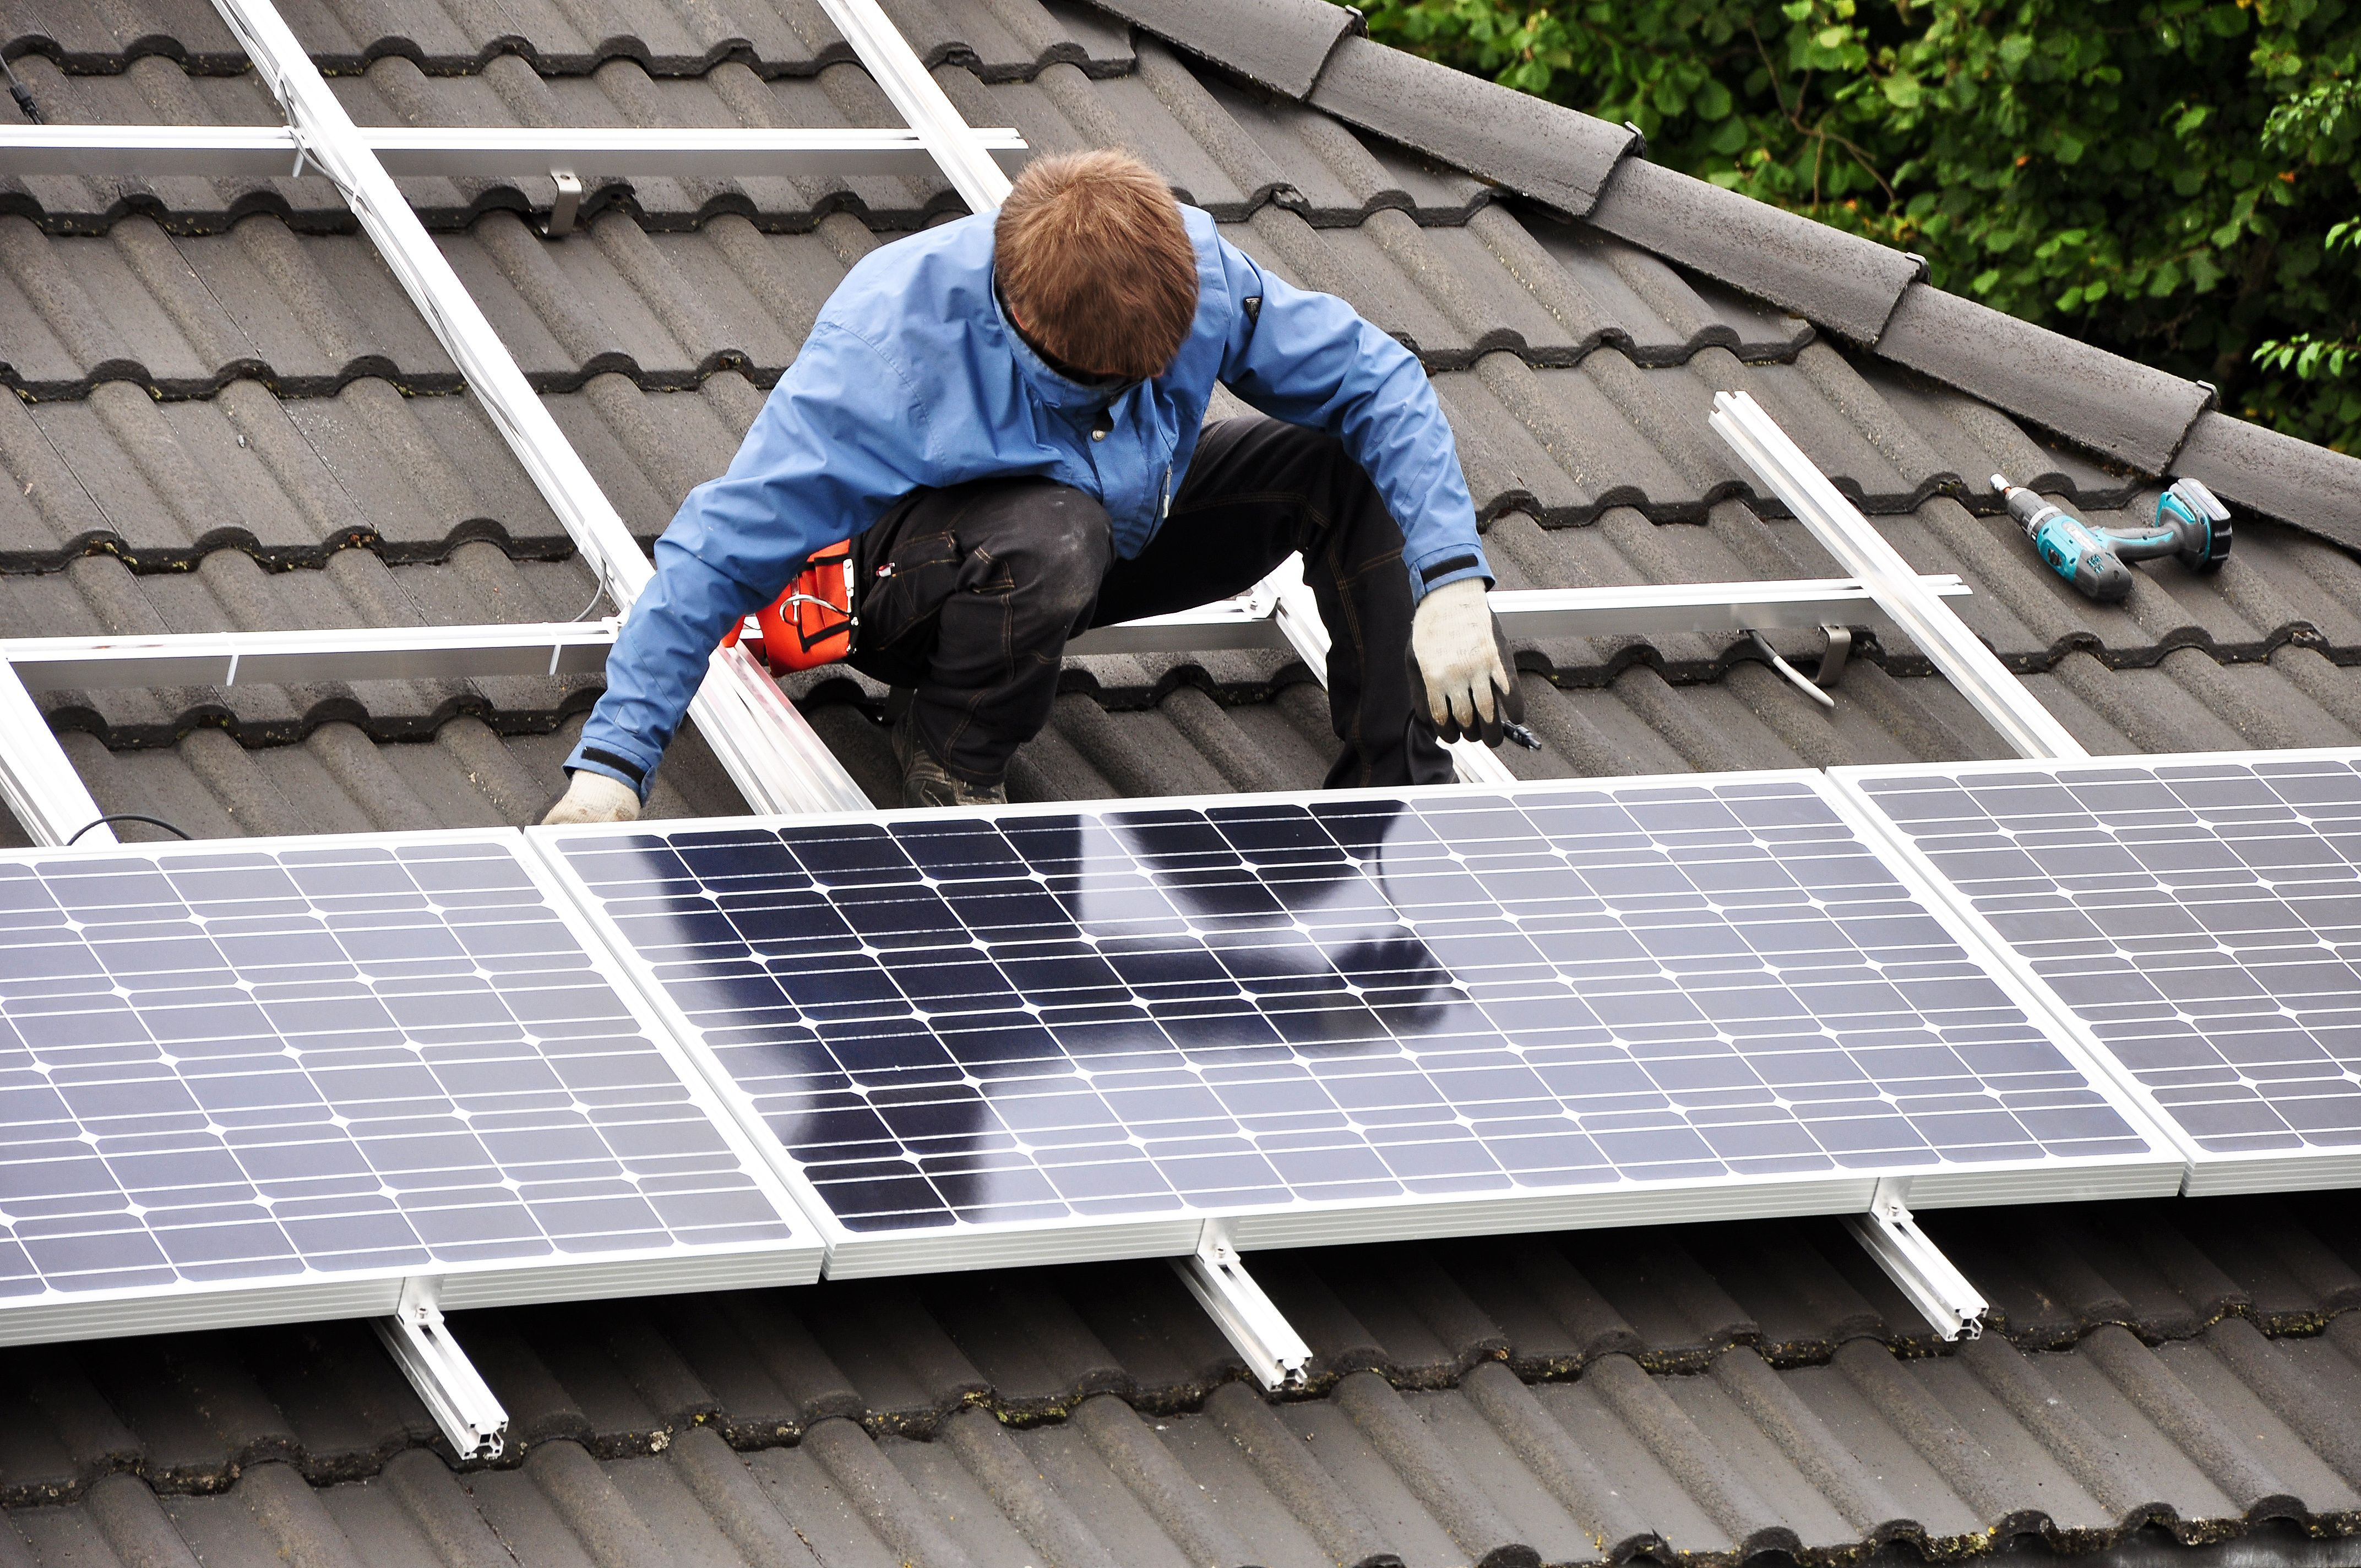 6 Common Mistakes Solar PV Installers Make - Energy Matters